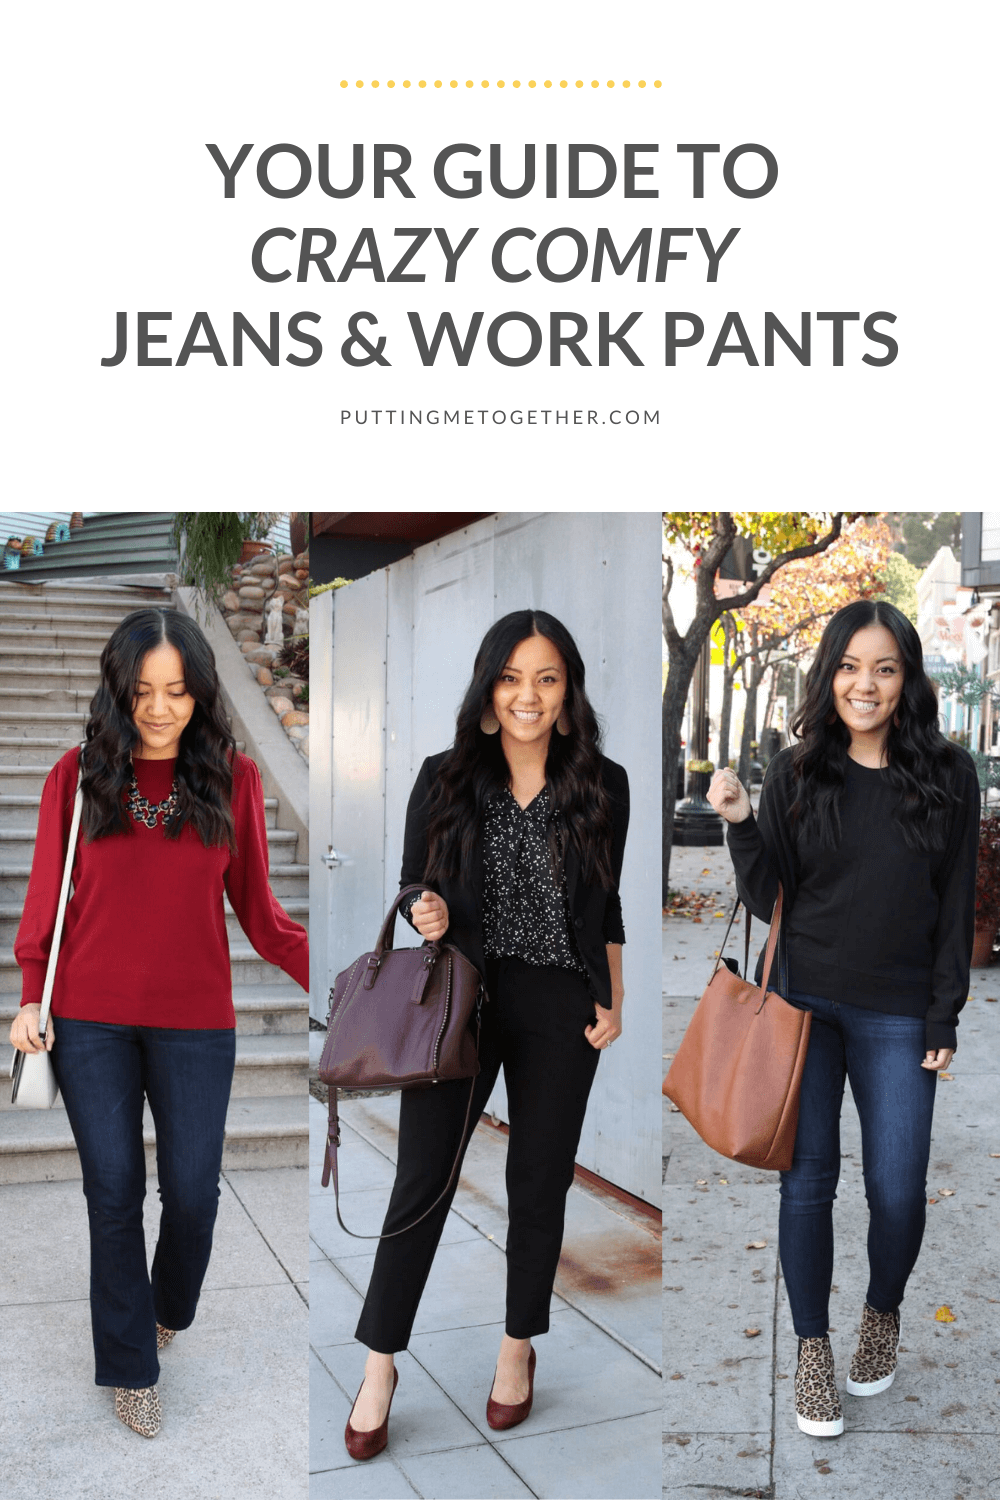 Your Guide To Crazy Comfy Jeans and Work Pants